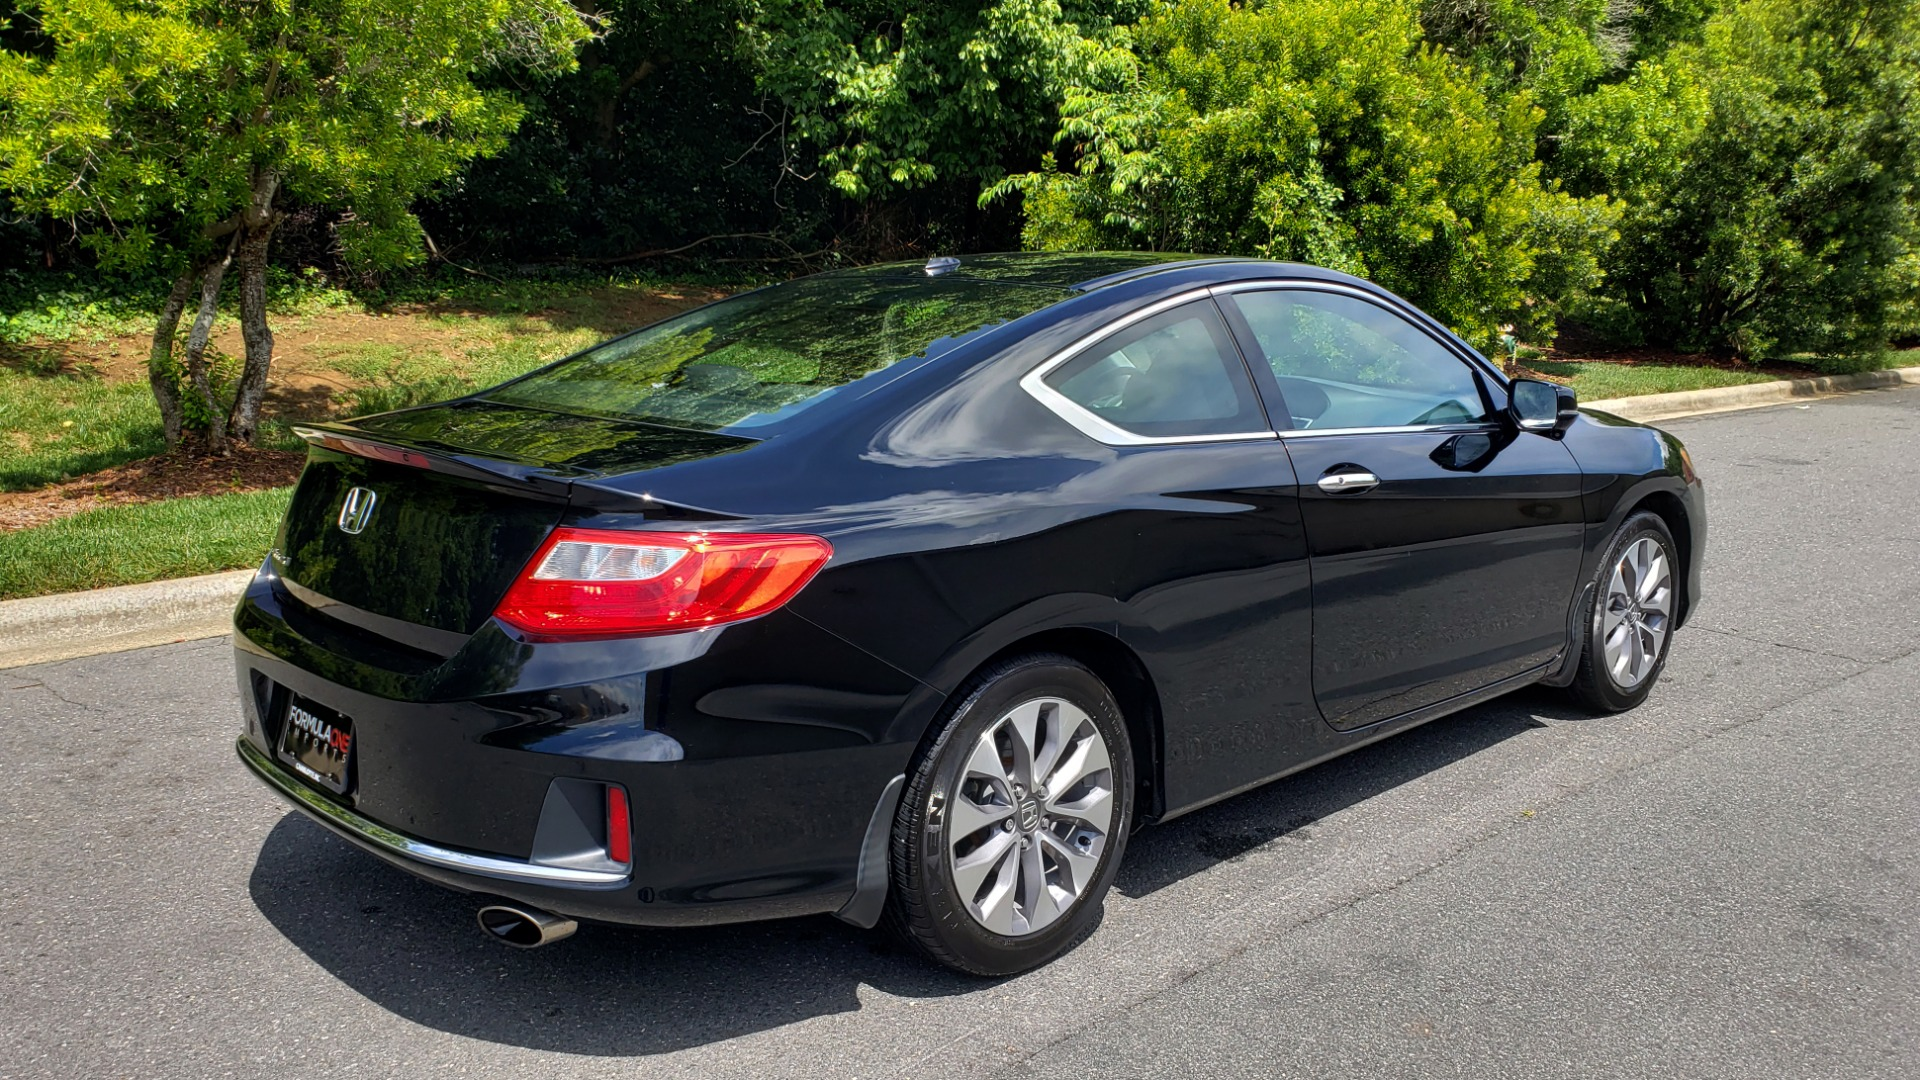 Used 2014 Honda ACCORD COUPE EX-L / 4-CYL / AUTO / SUNROOF / LEATHER / HEATED SEATS for sale Sold at Formula Imports in Charlotte NC 28227 6